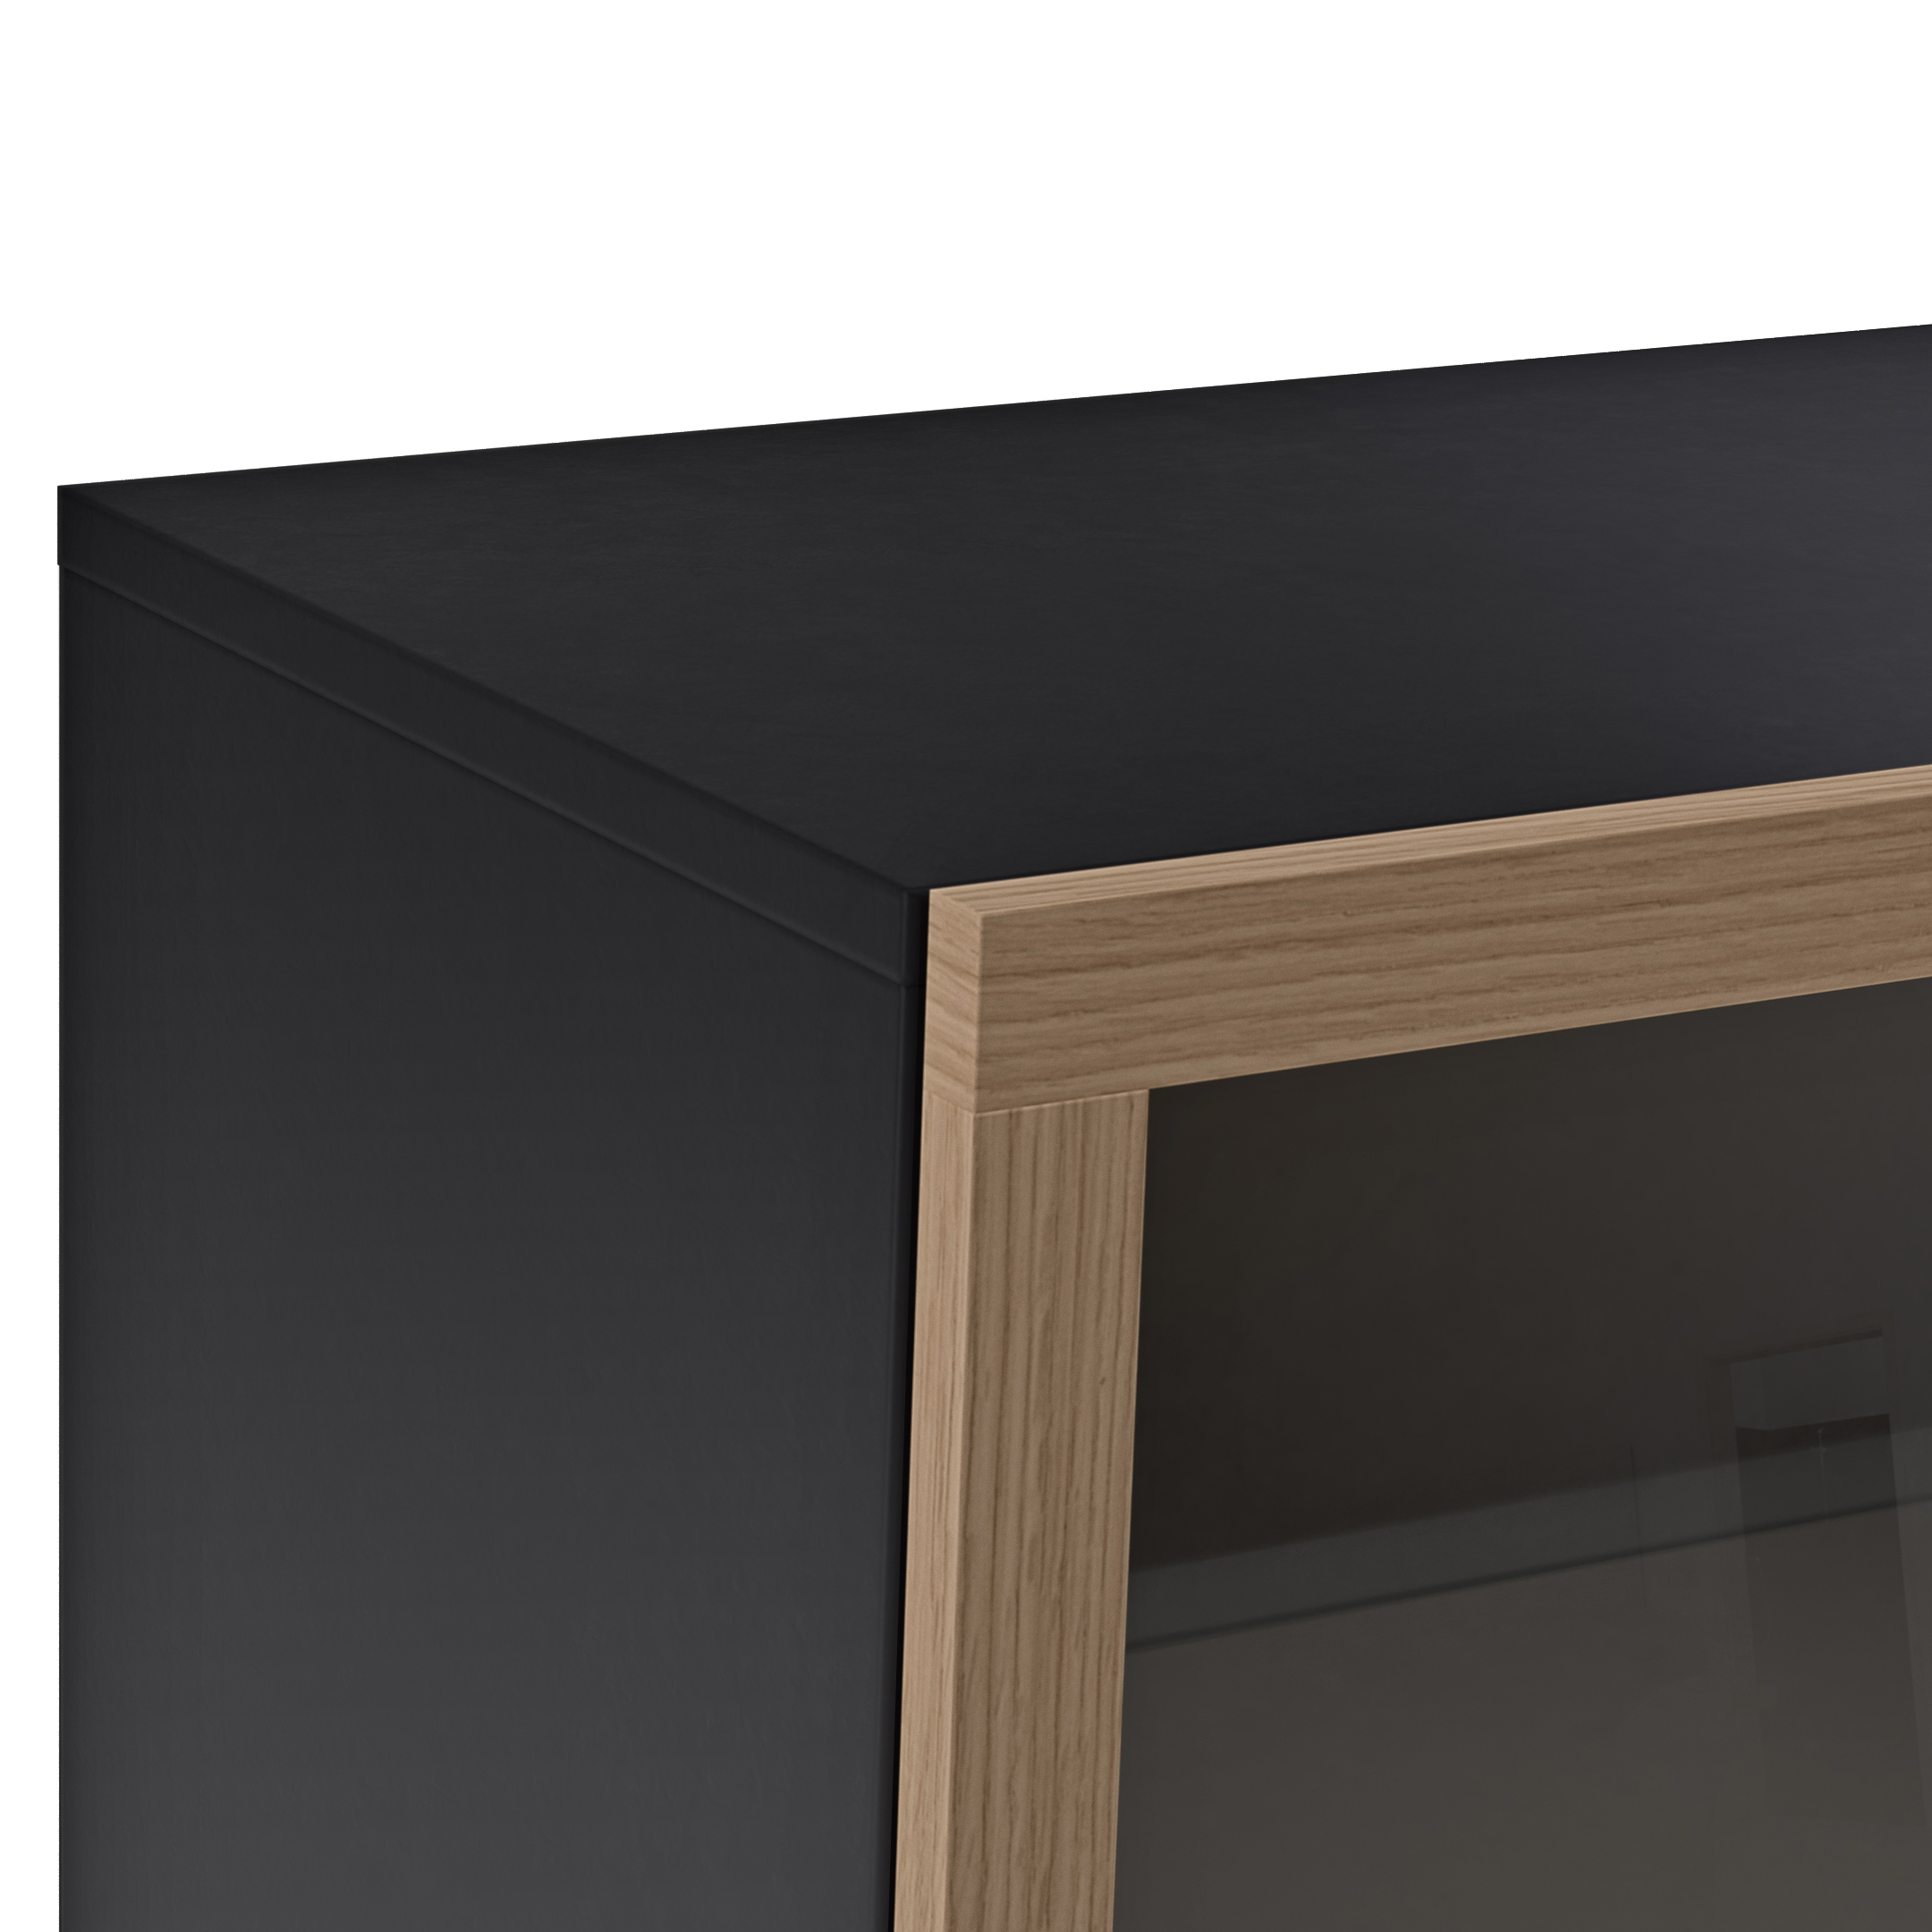 Global Select Highboard Montero detailbild 4 100043 | Homepoet